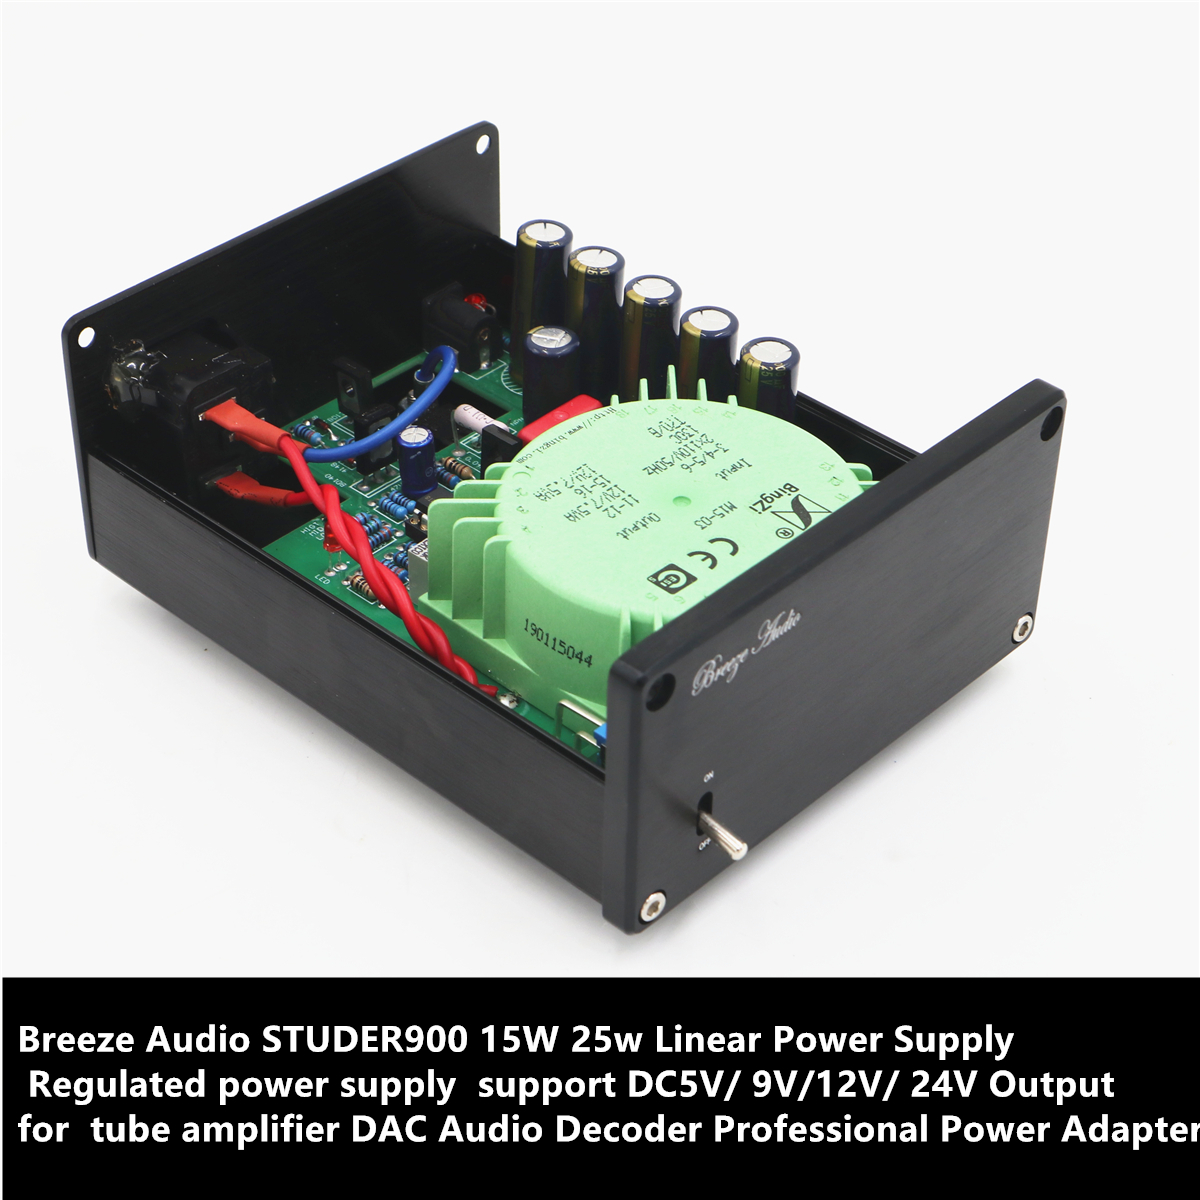 Breeze Audio 15W Linear Power Supply Regulated power supply Refer to STUDER900 support 5V or 9V